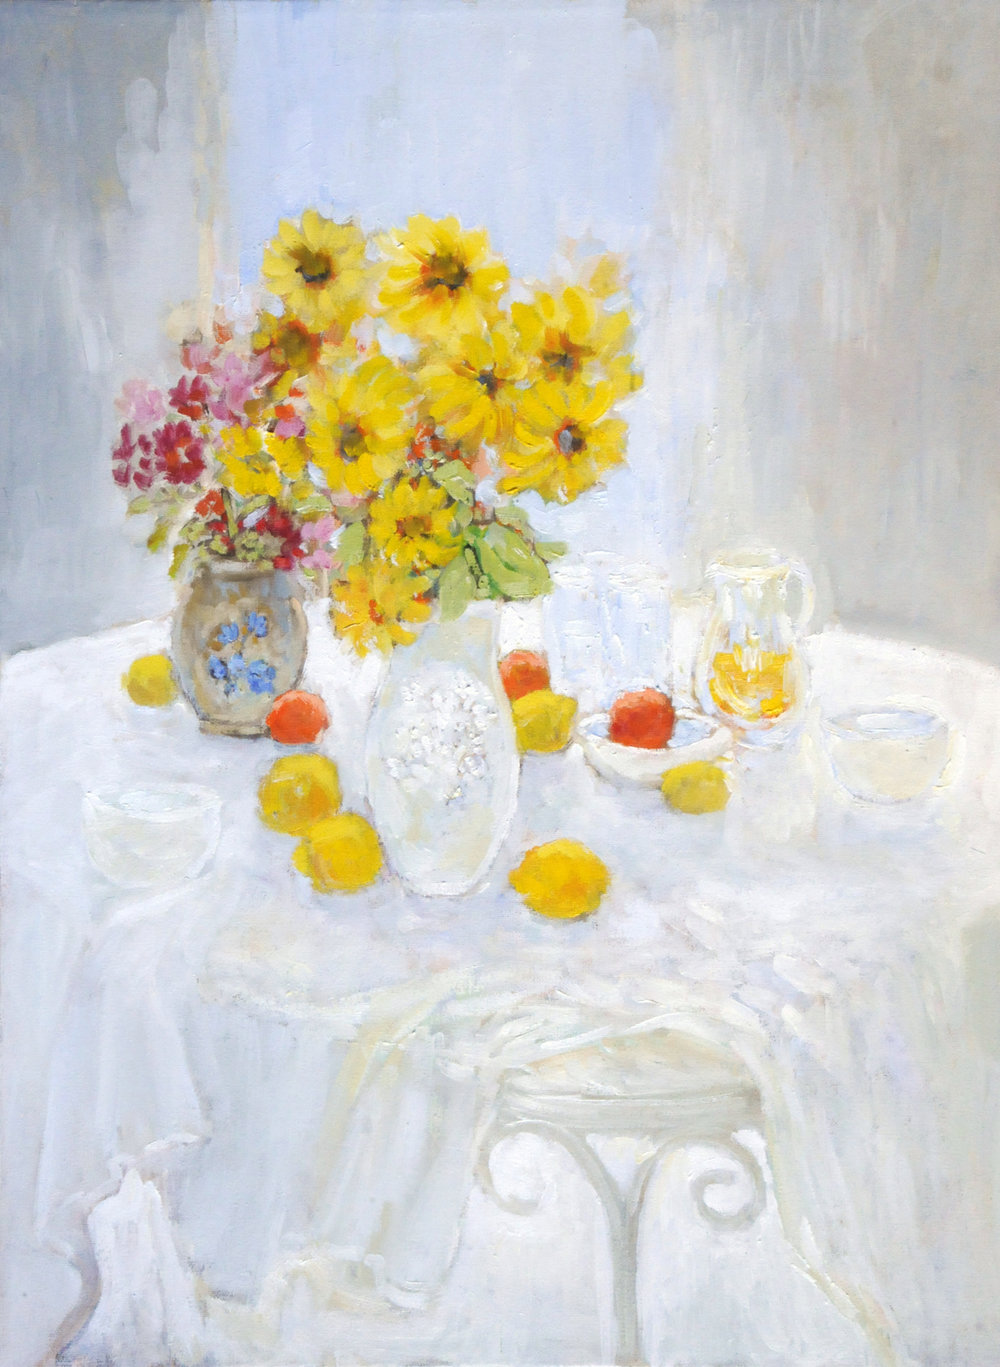 Still life with sunflowers, Michael Khoury